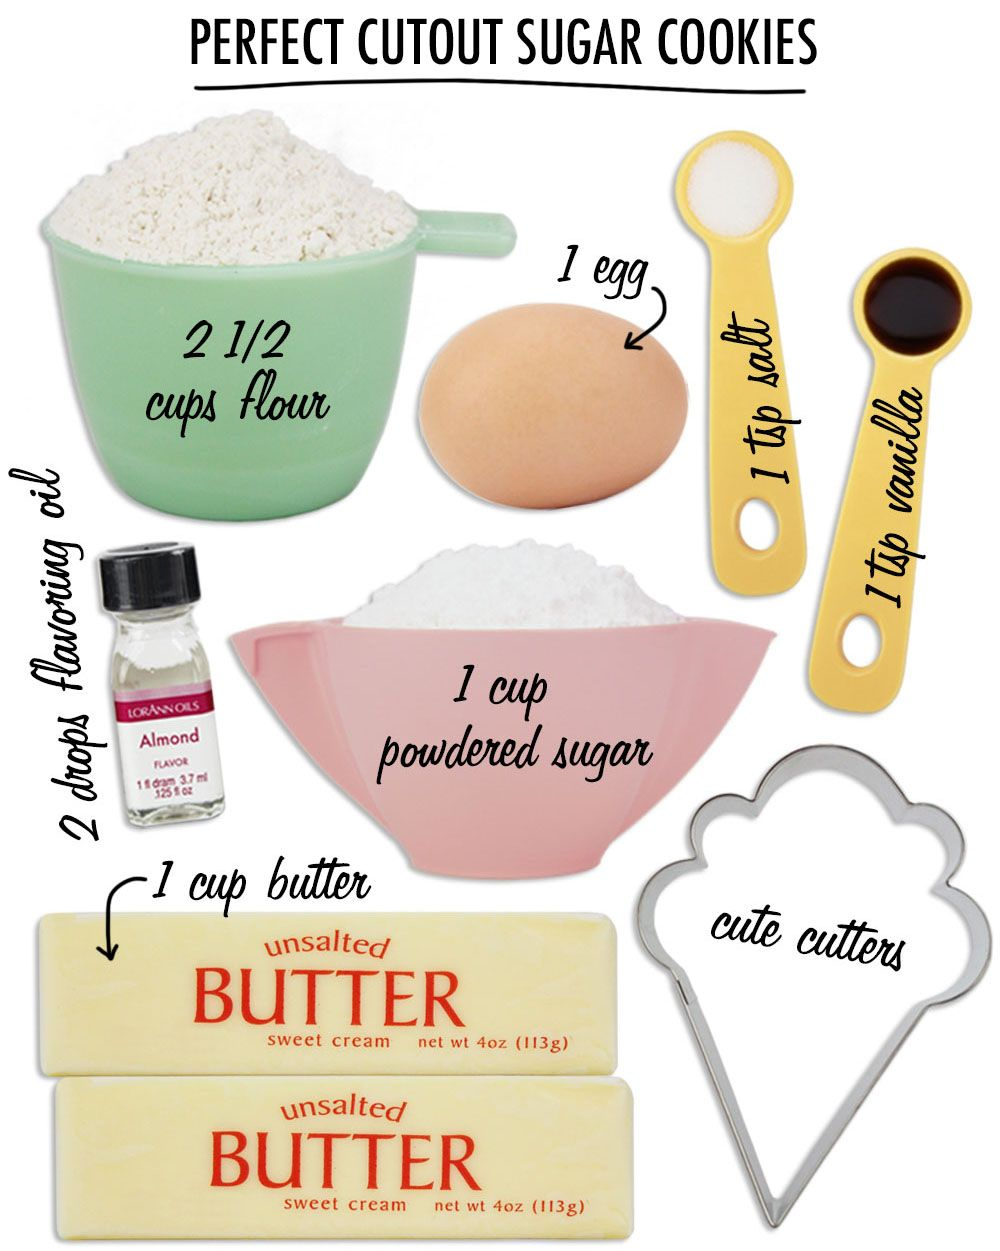 Perfect Cut Out Sugar Cookies Recipe |  www.LayerCakeShop.com